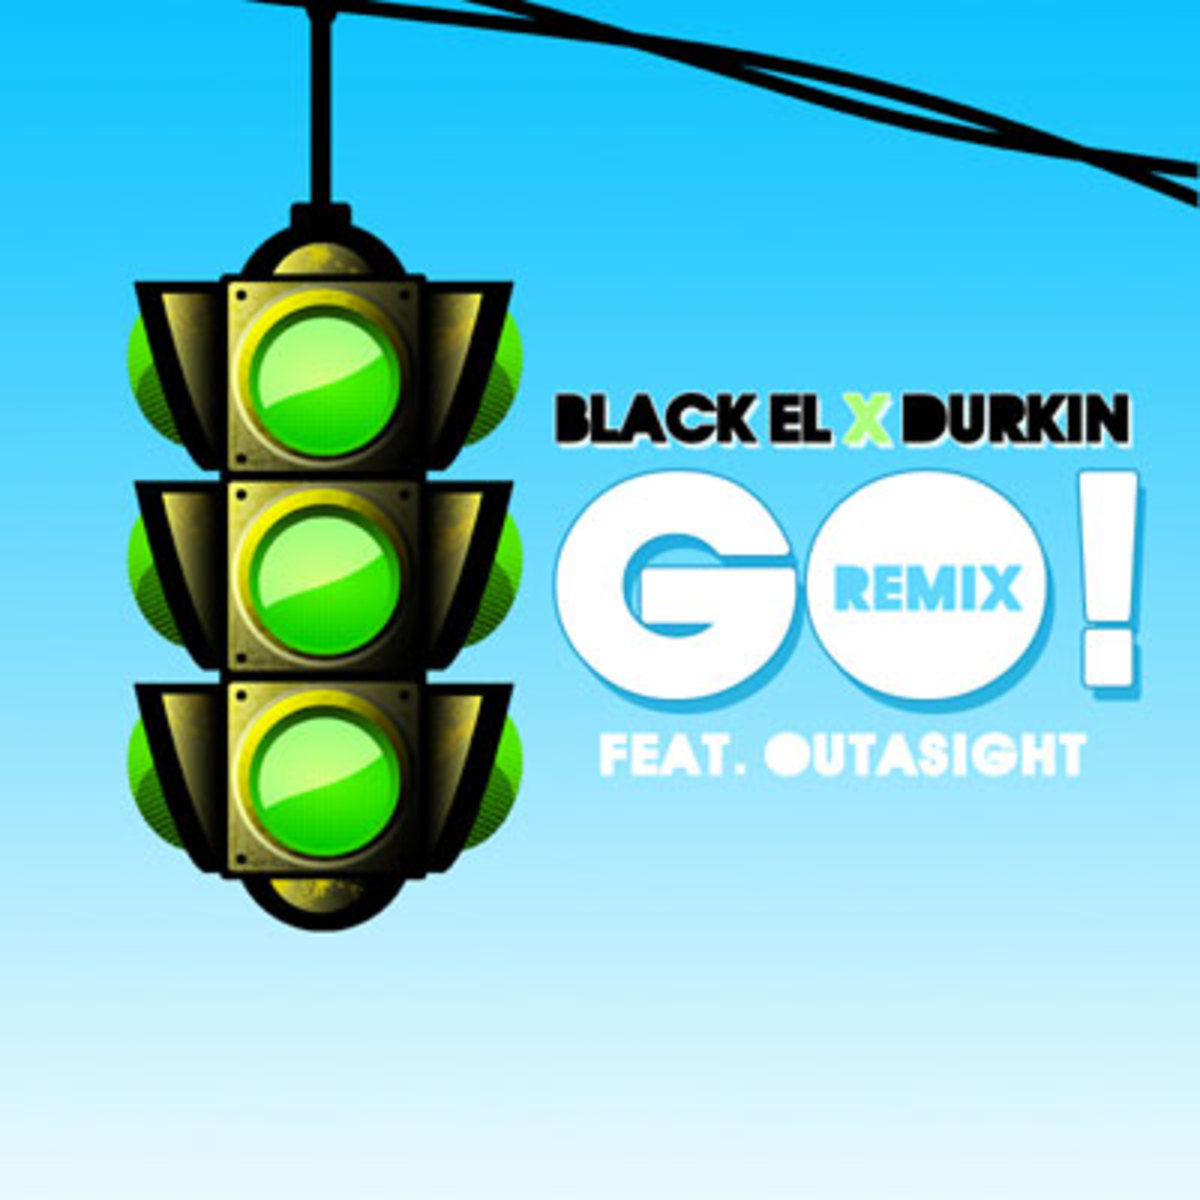 blackel-goremix.jpg